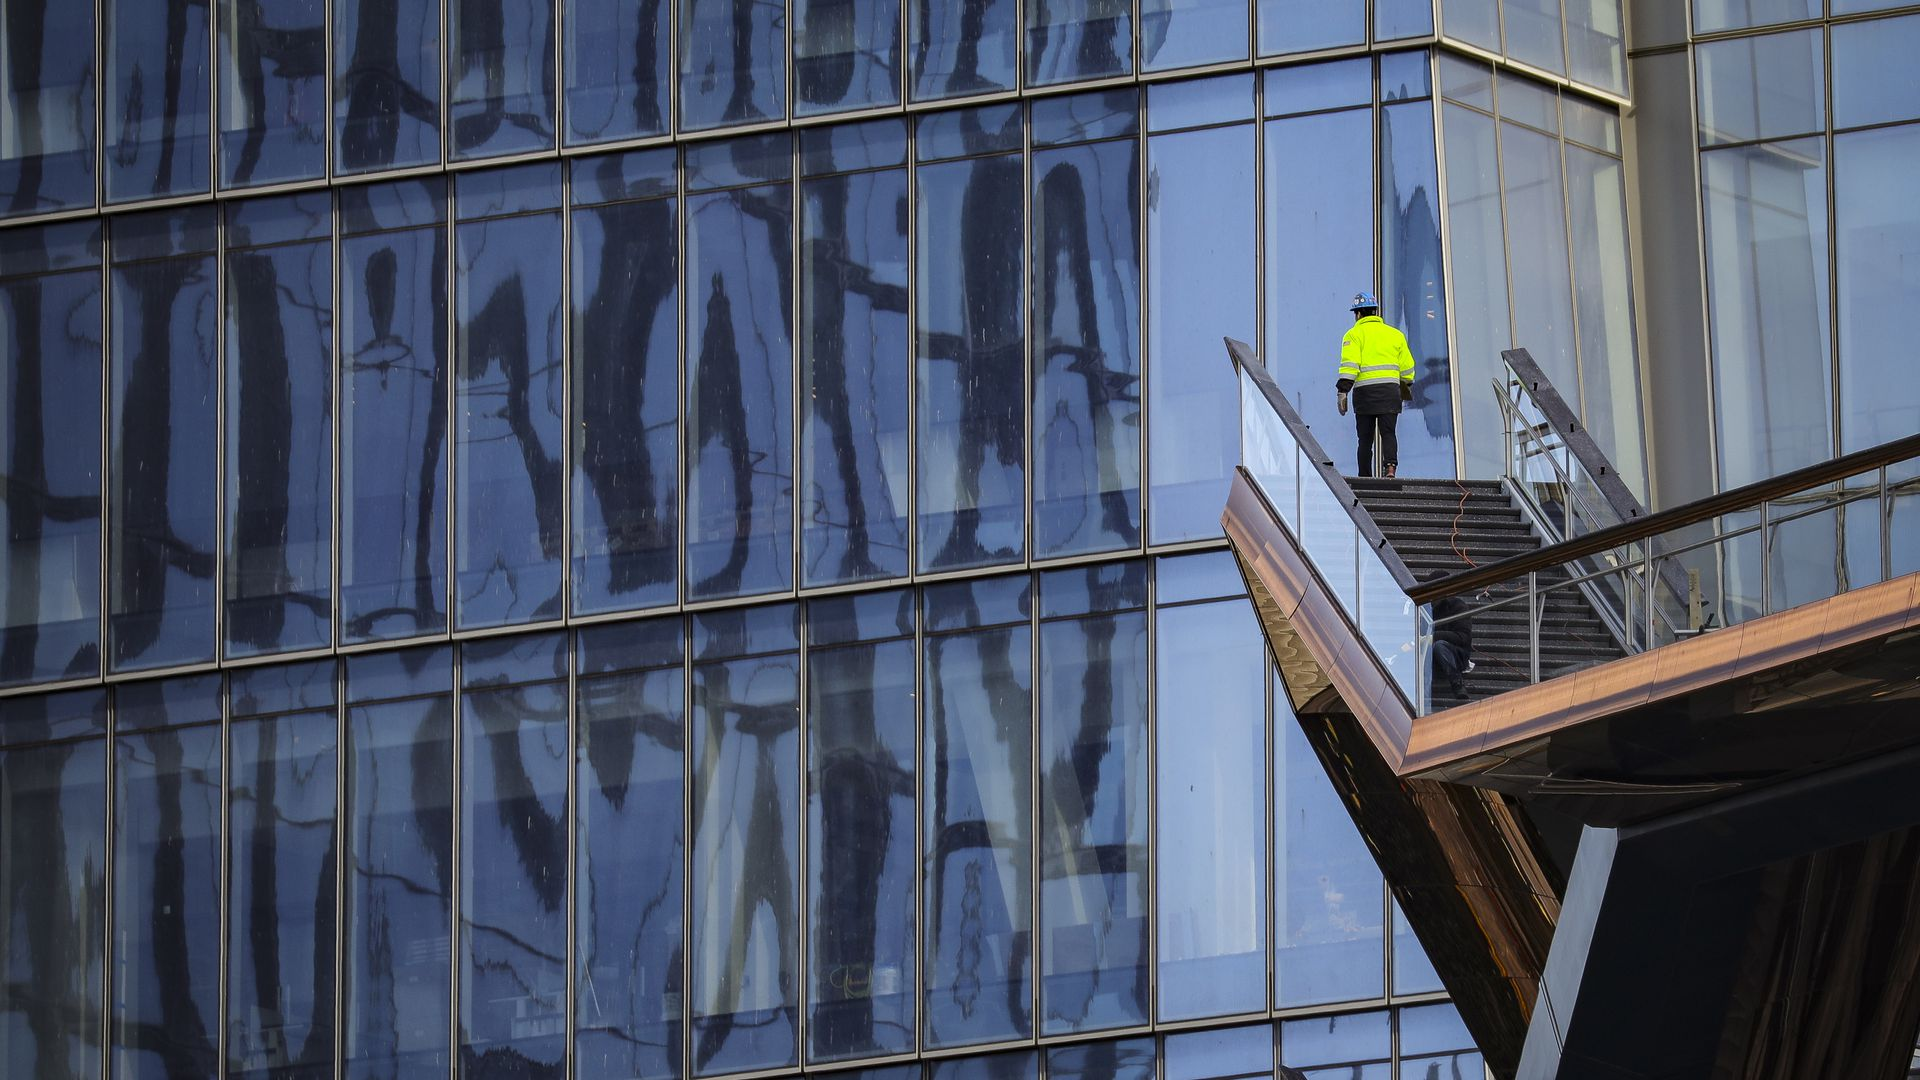 A construction worker stands at the end of a ladder in front of a New York skyscraper.